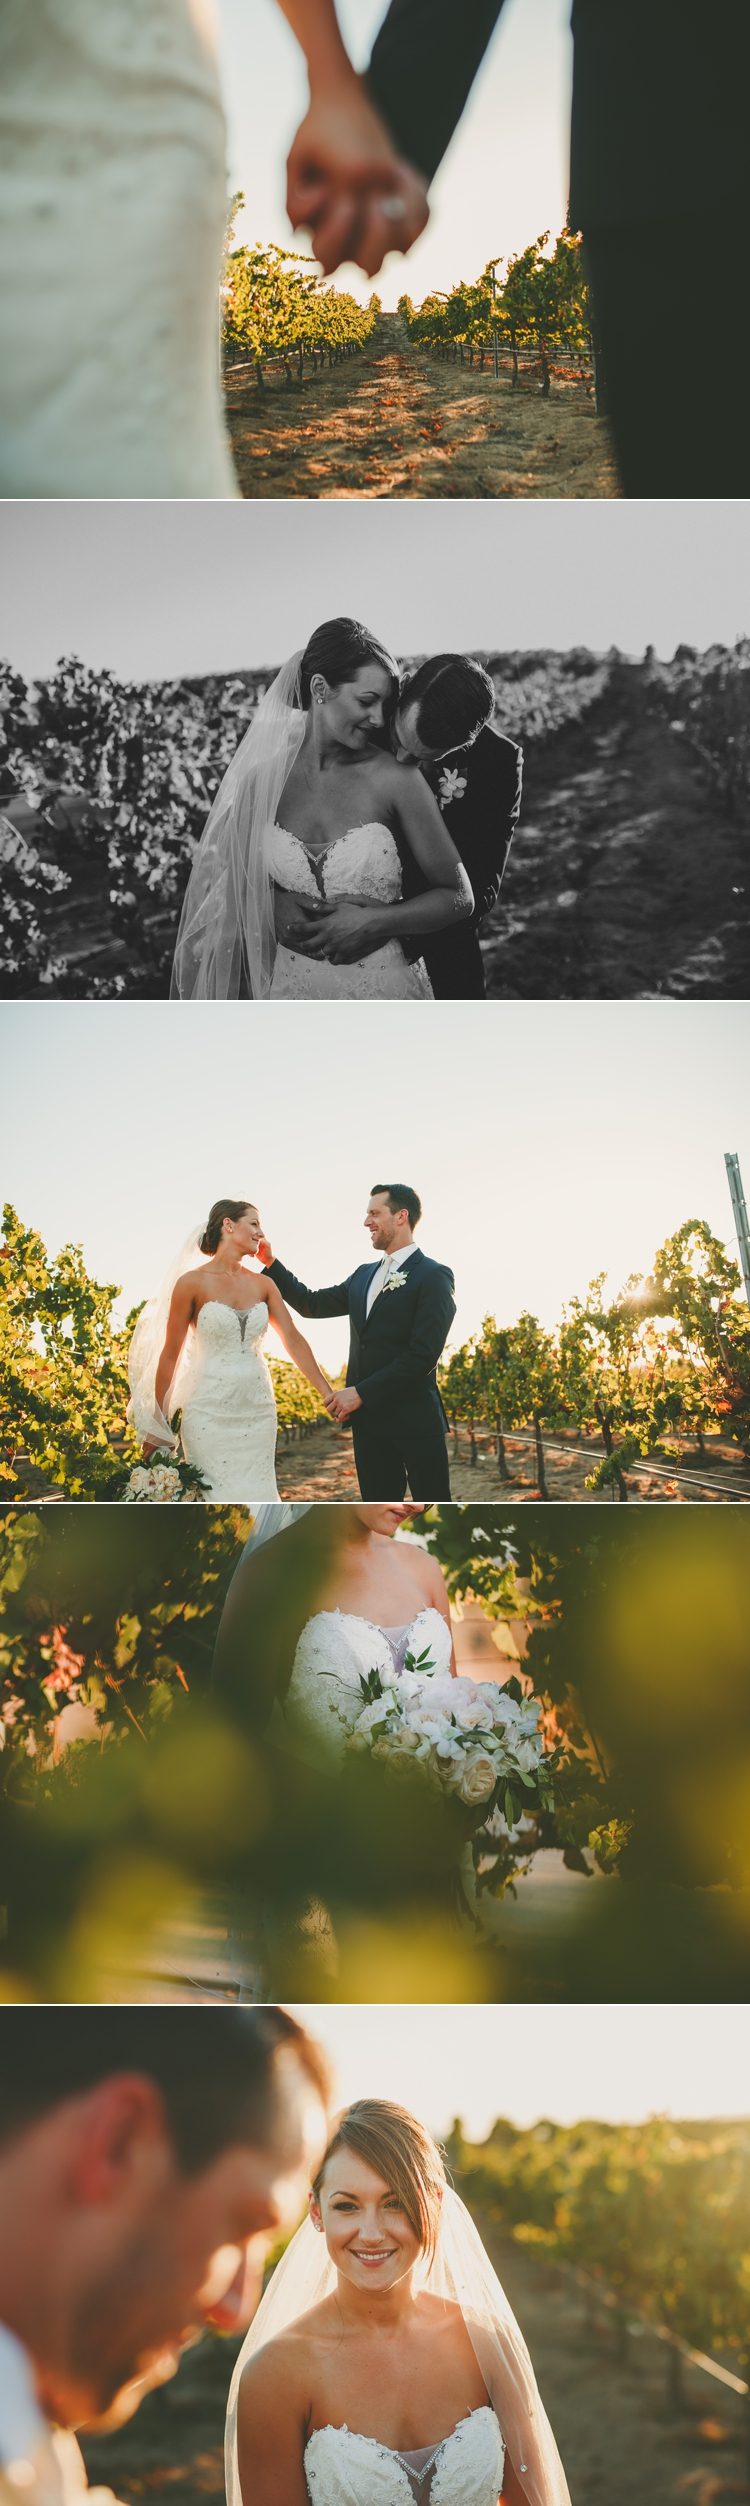 Wedding Photos Mount Palomar Winery Temecula